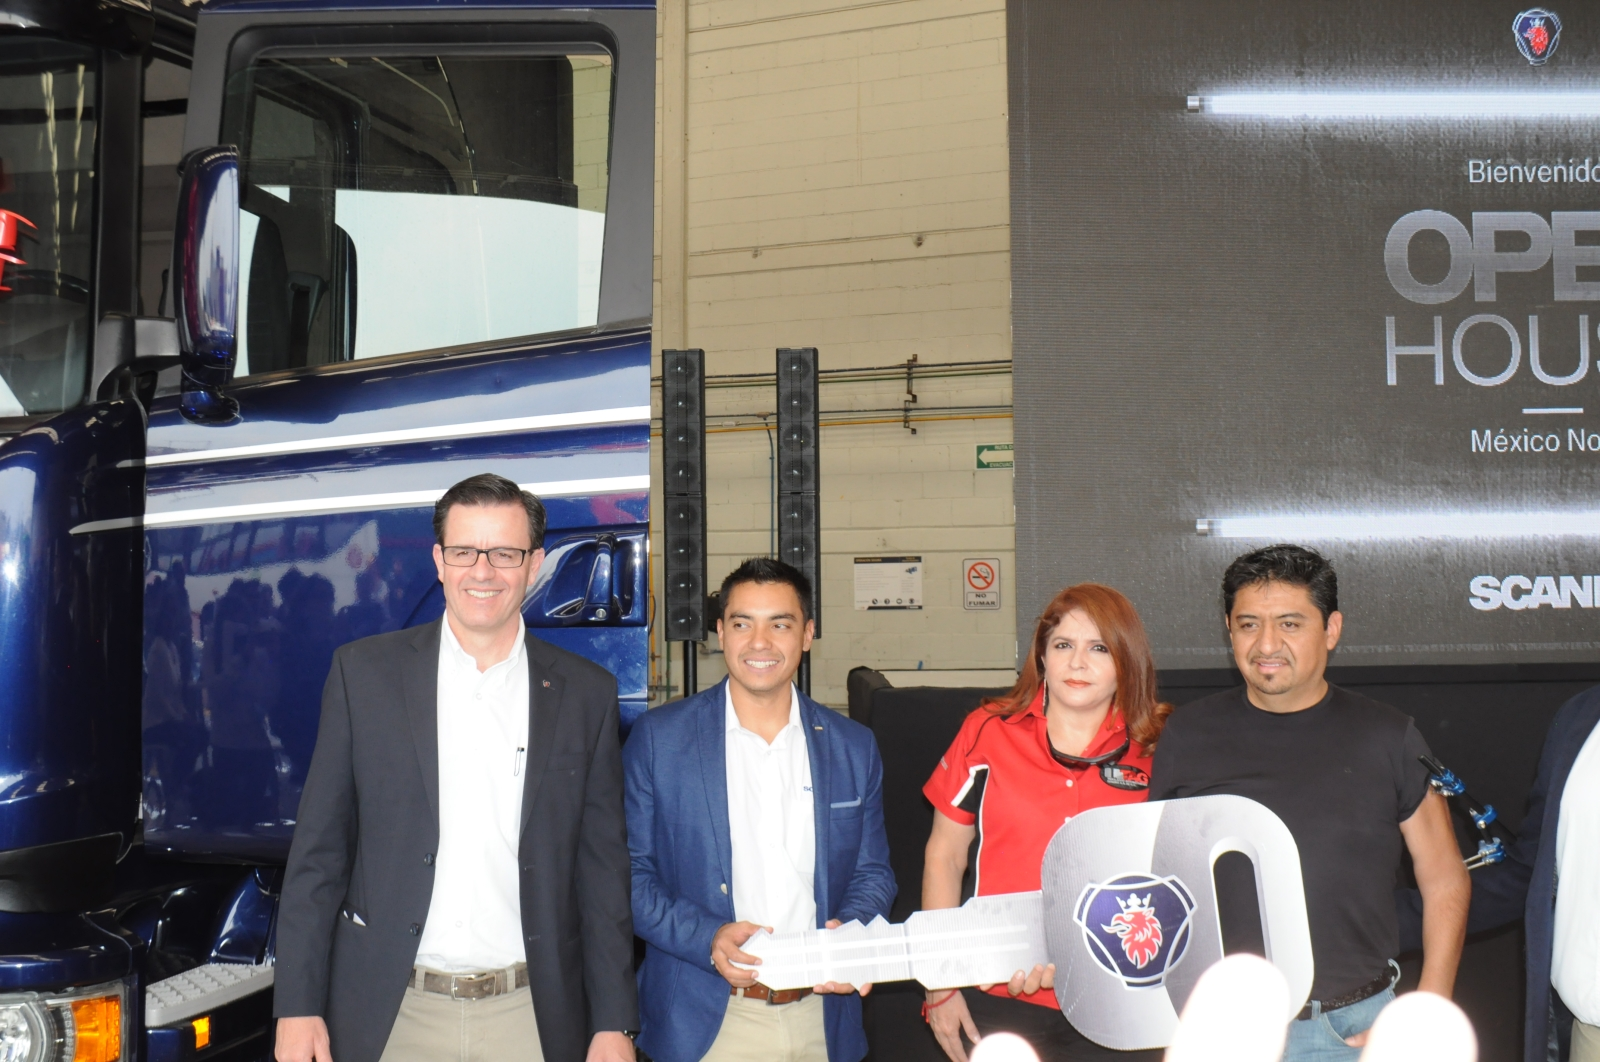 Scania celebra su primer Open House